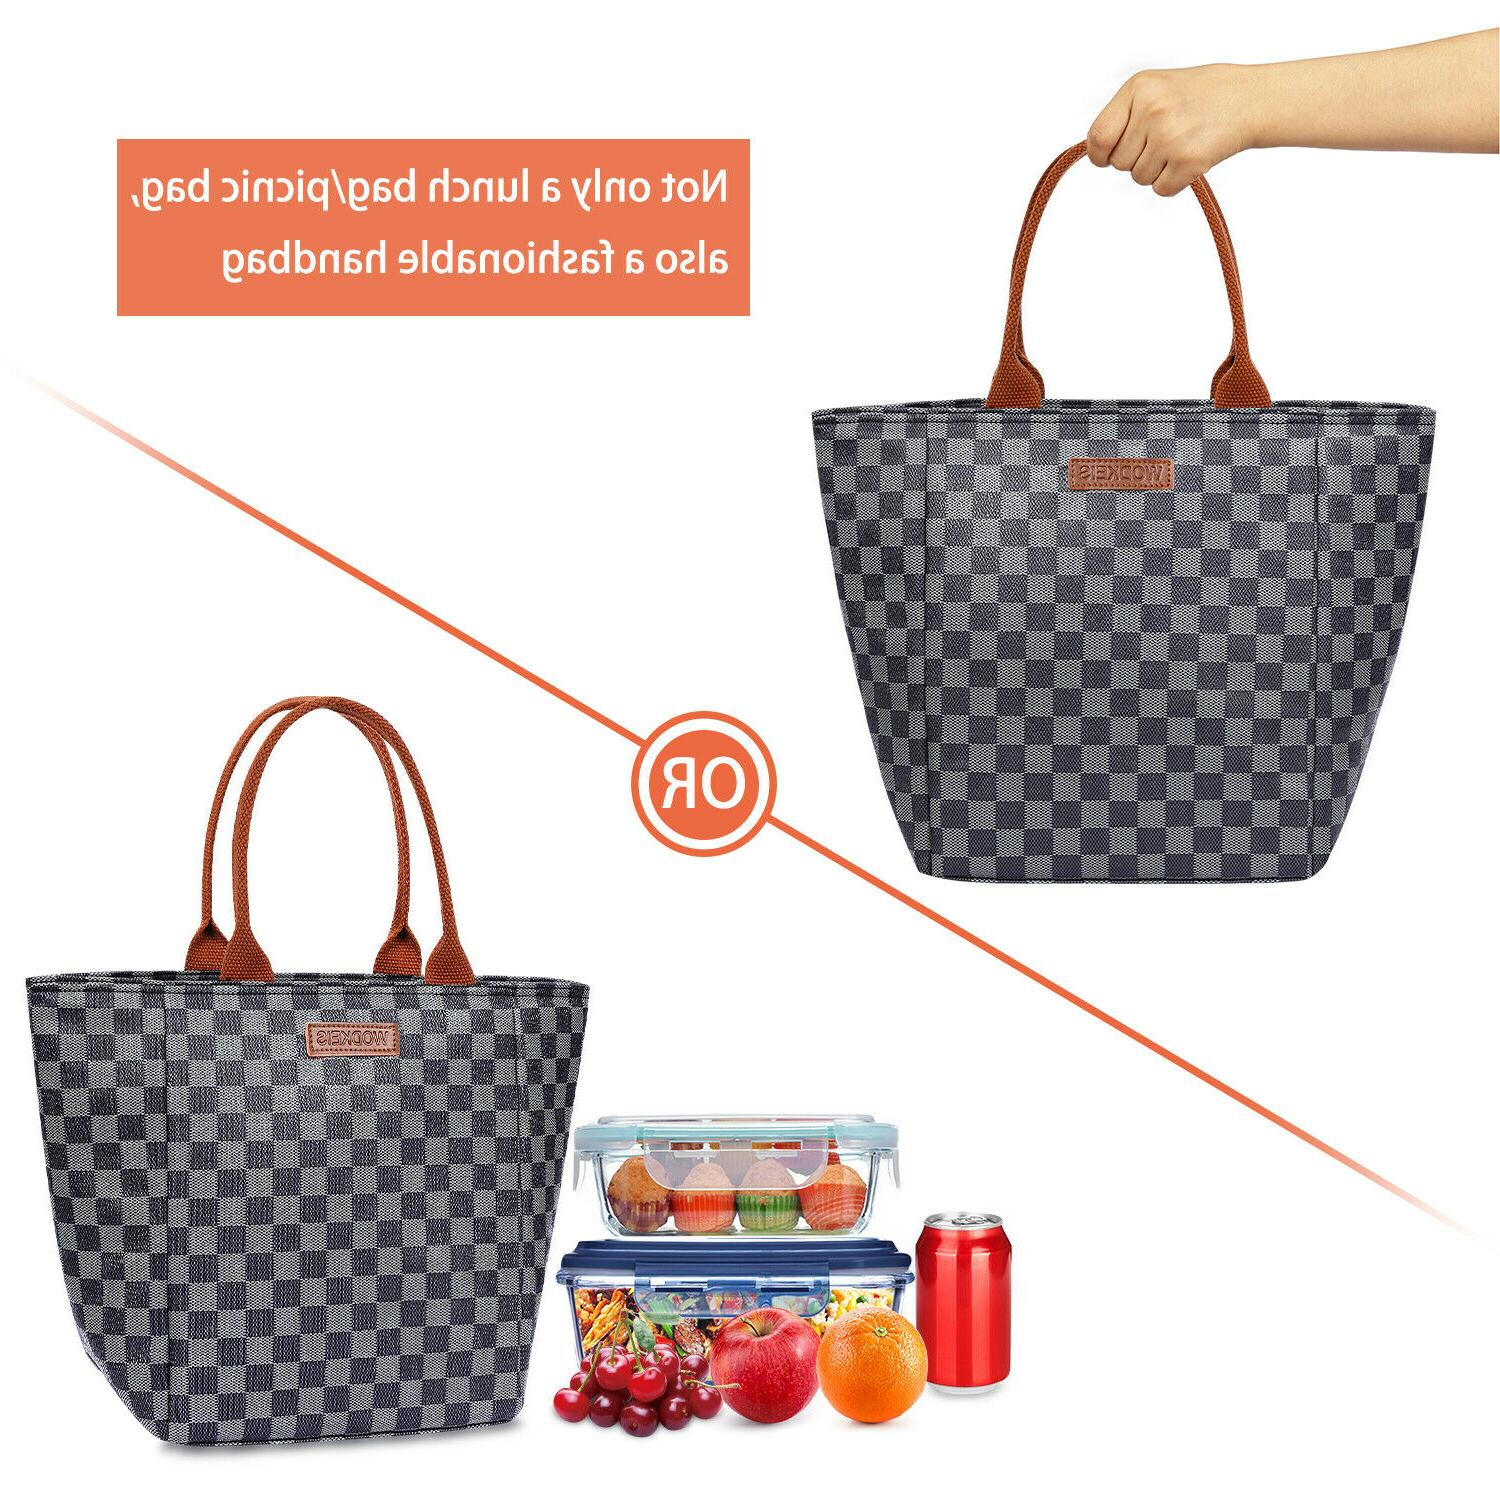 WODKEIS Insulated Lunch Bag Tote For Outing 10L